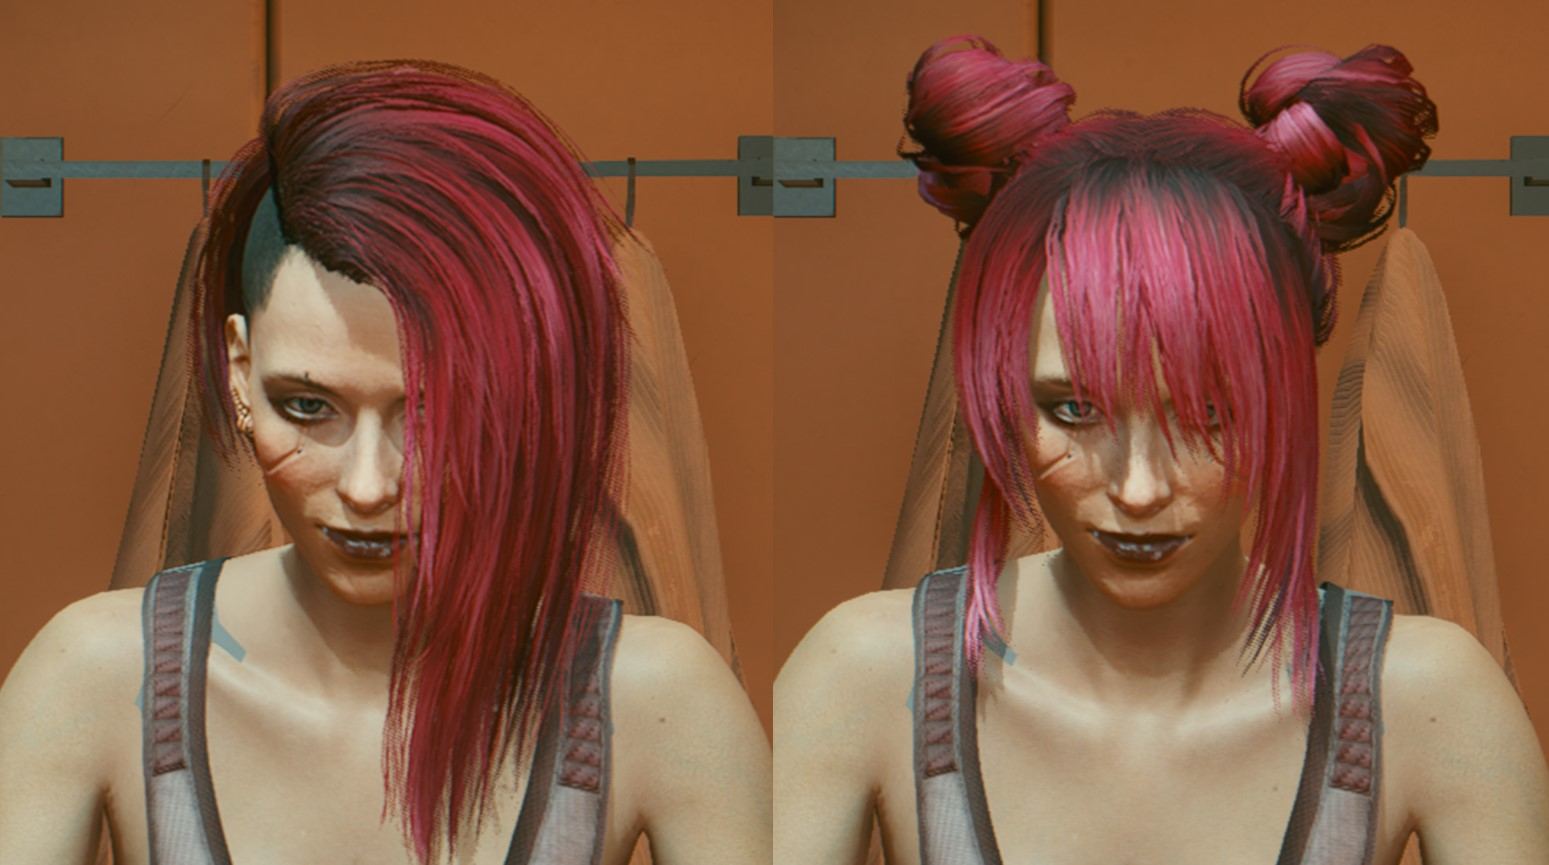 Change your Cyberpunk 2077 hairstyle with this mod